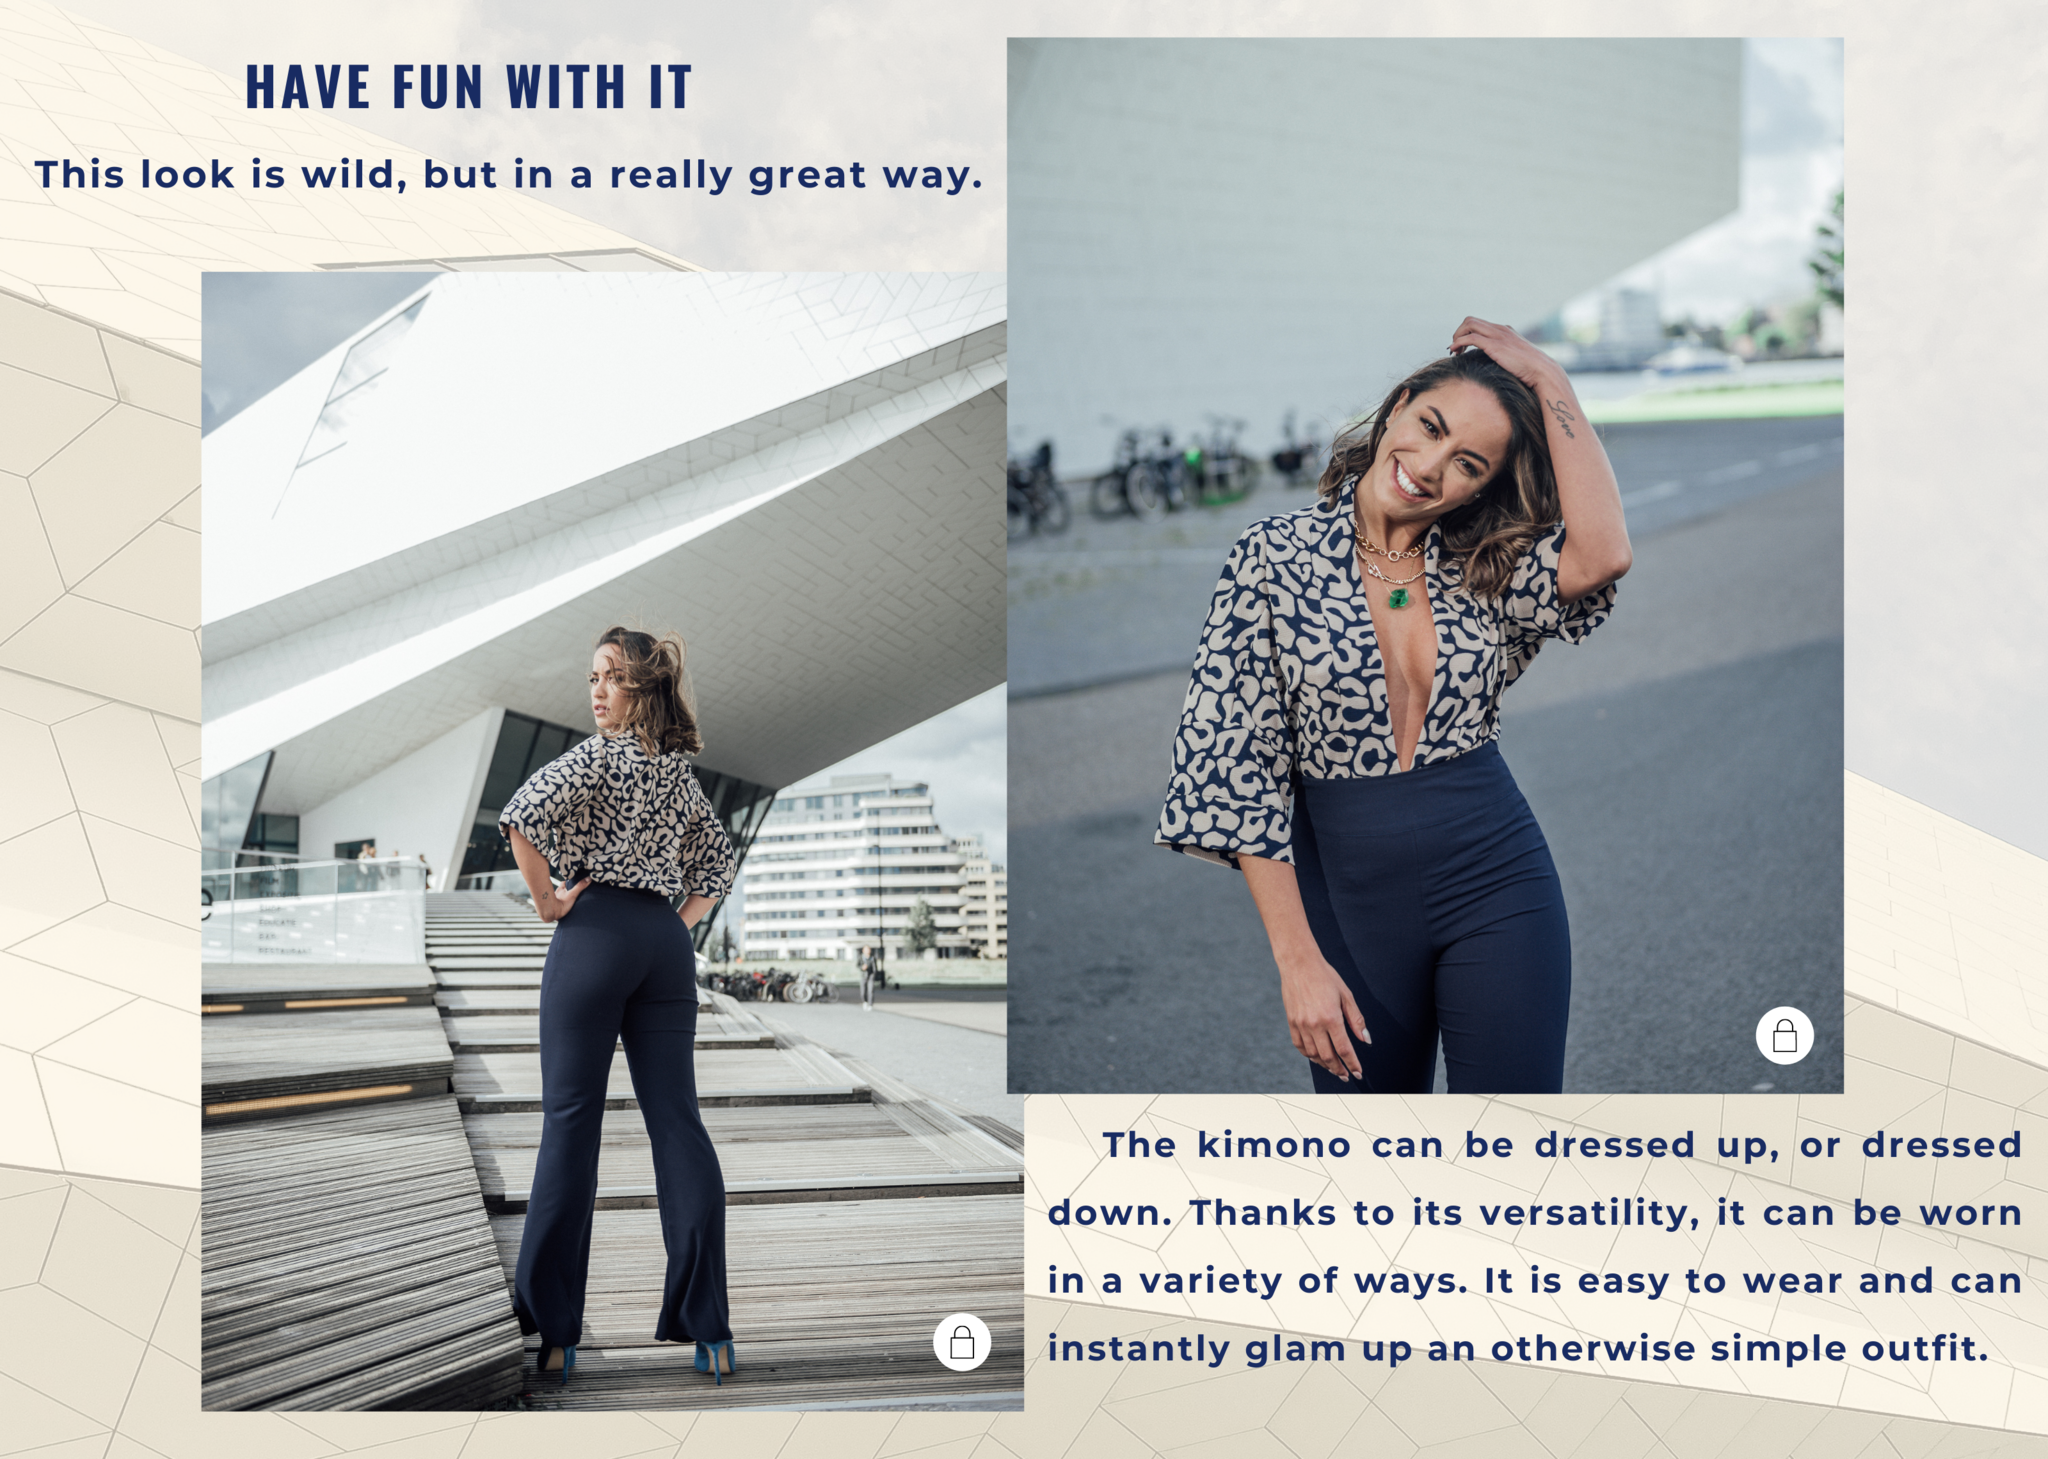 The kimono can be dressed up, or dressed down. Thanks to its versatility, it can be worn in a variety of ways. It is easy to wear and can instantly glam up an otherwise simple outfit.